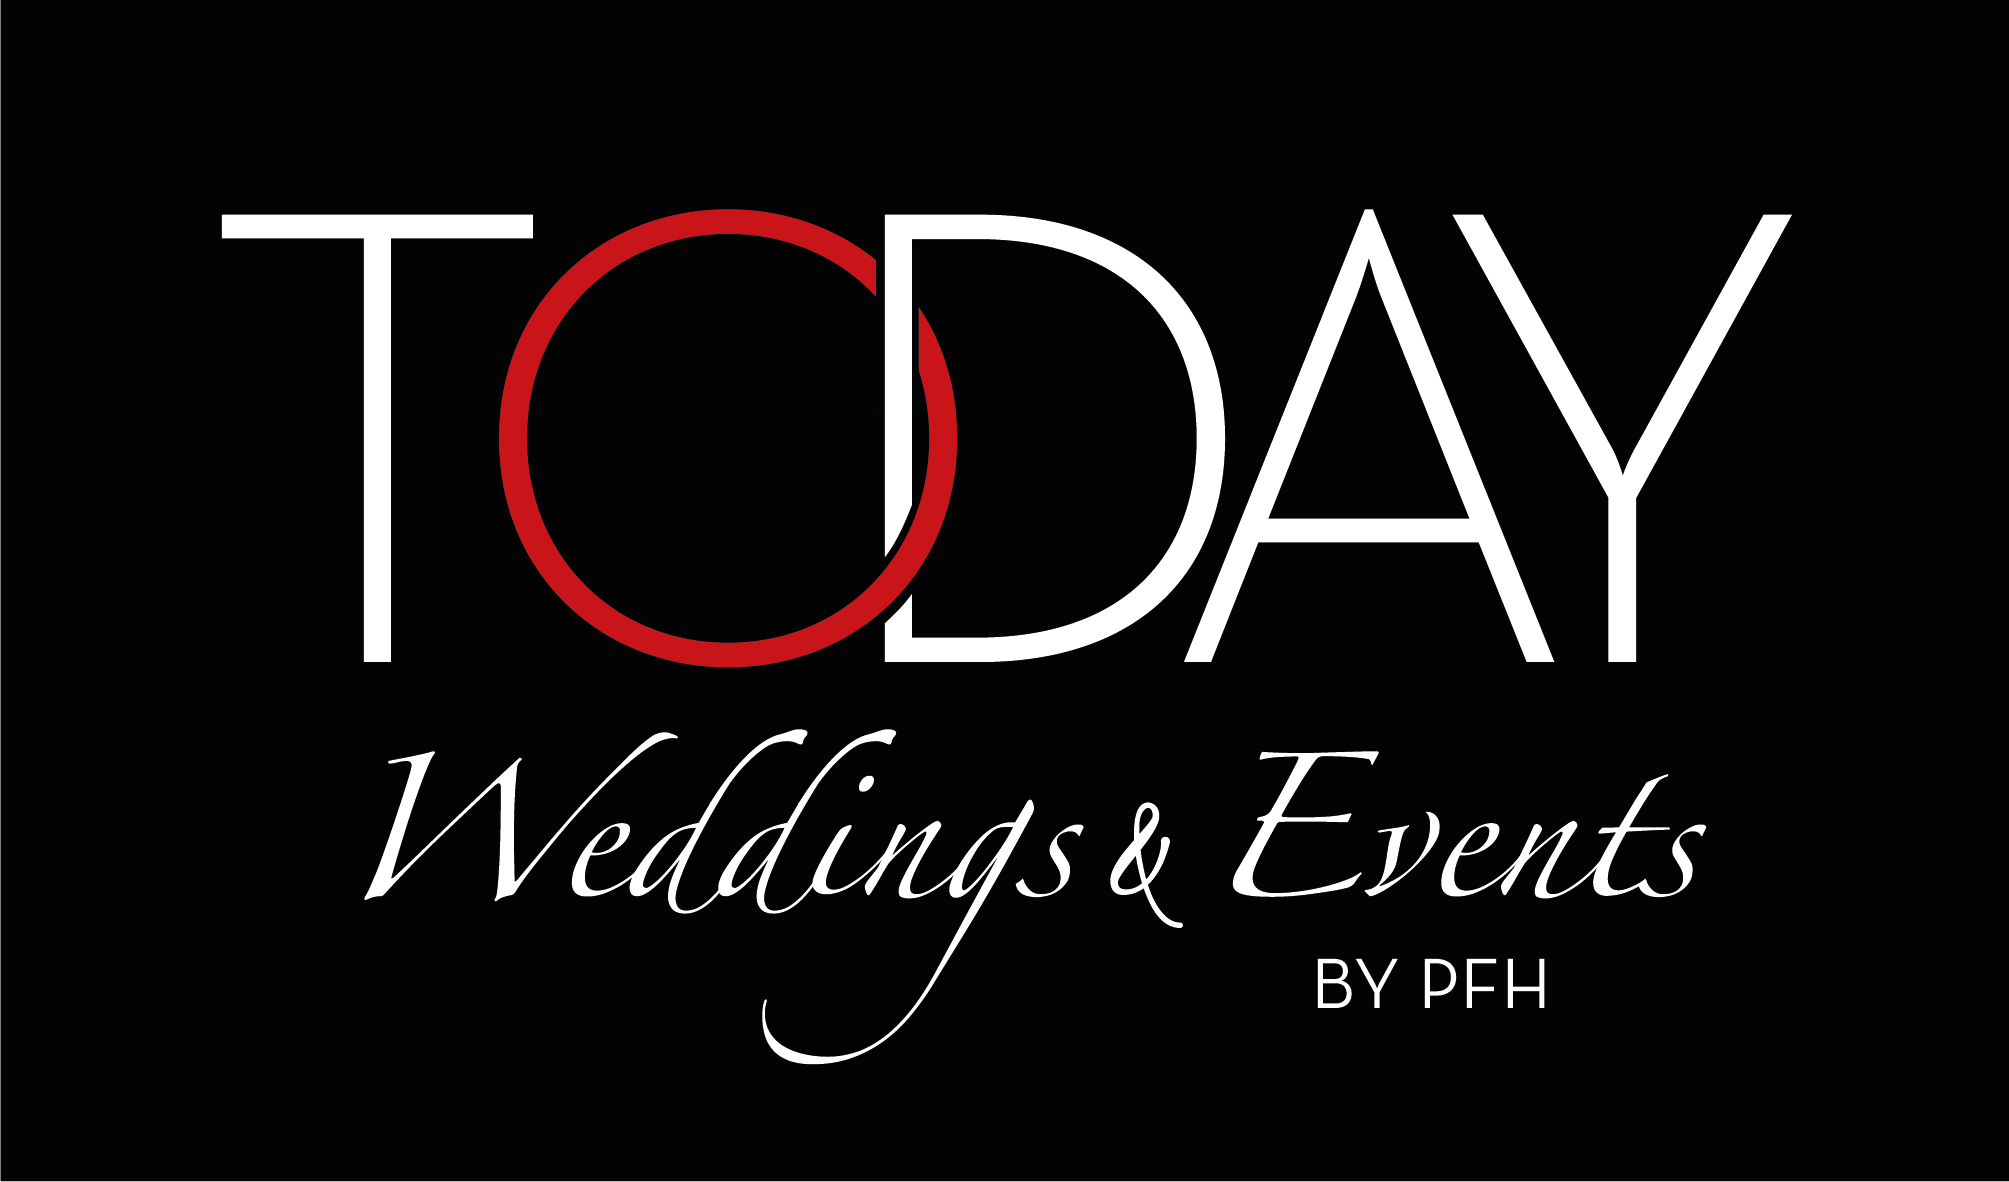 TODAY Weddings & Events